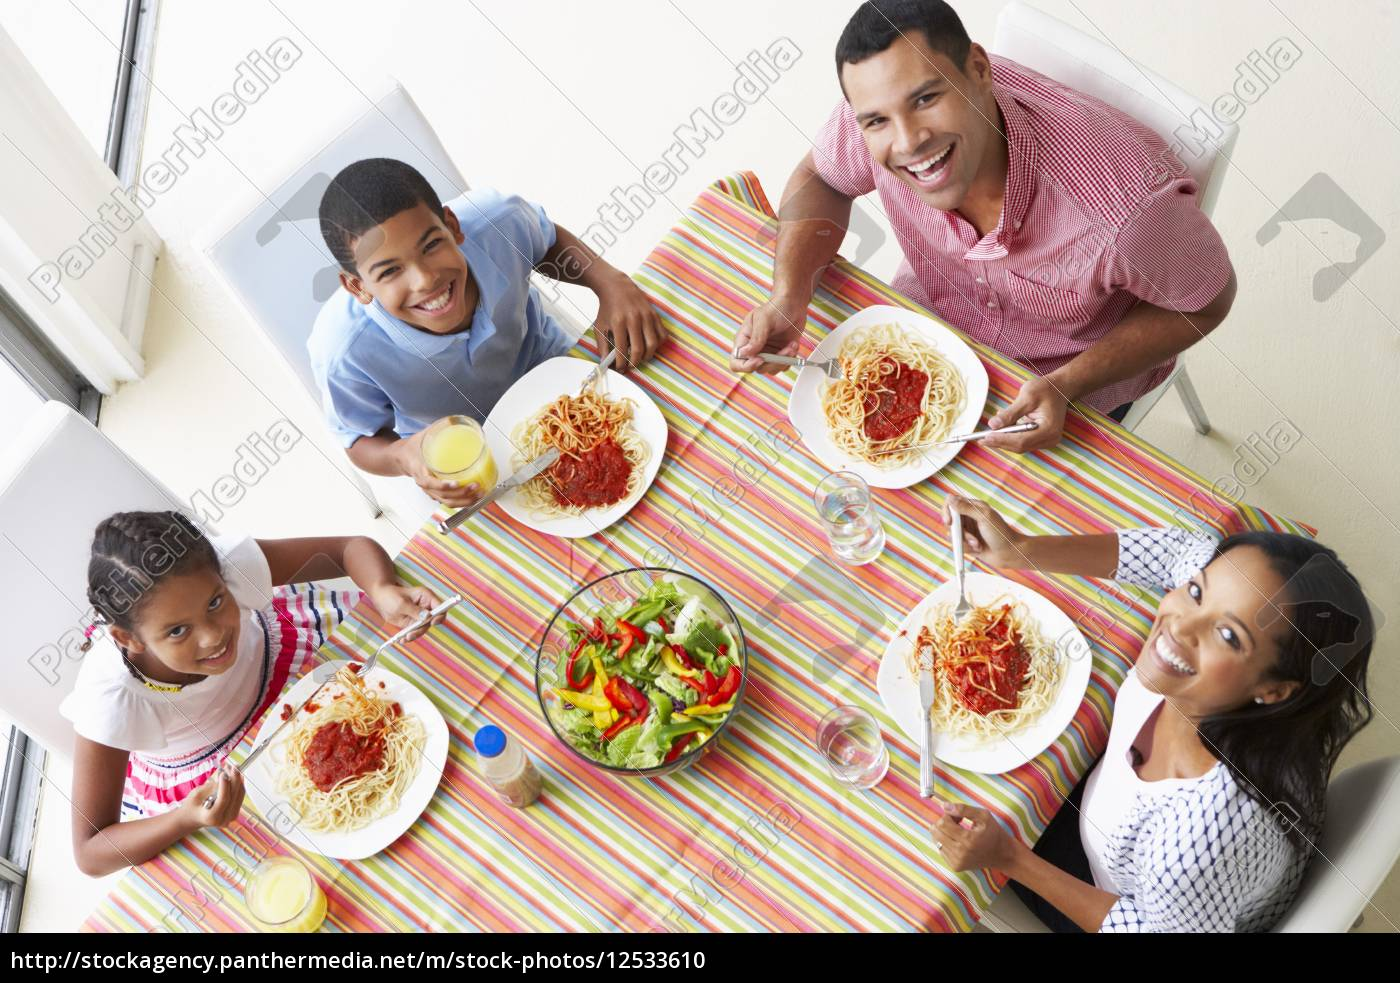 overhead, view, of, family, eating, meal - 12533610